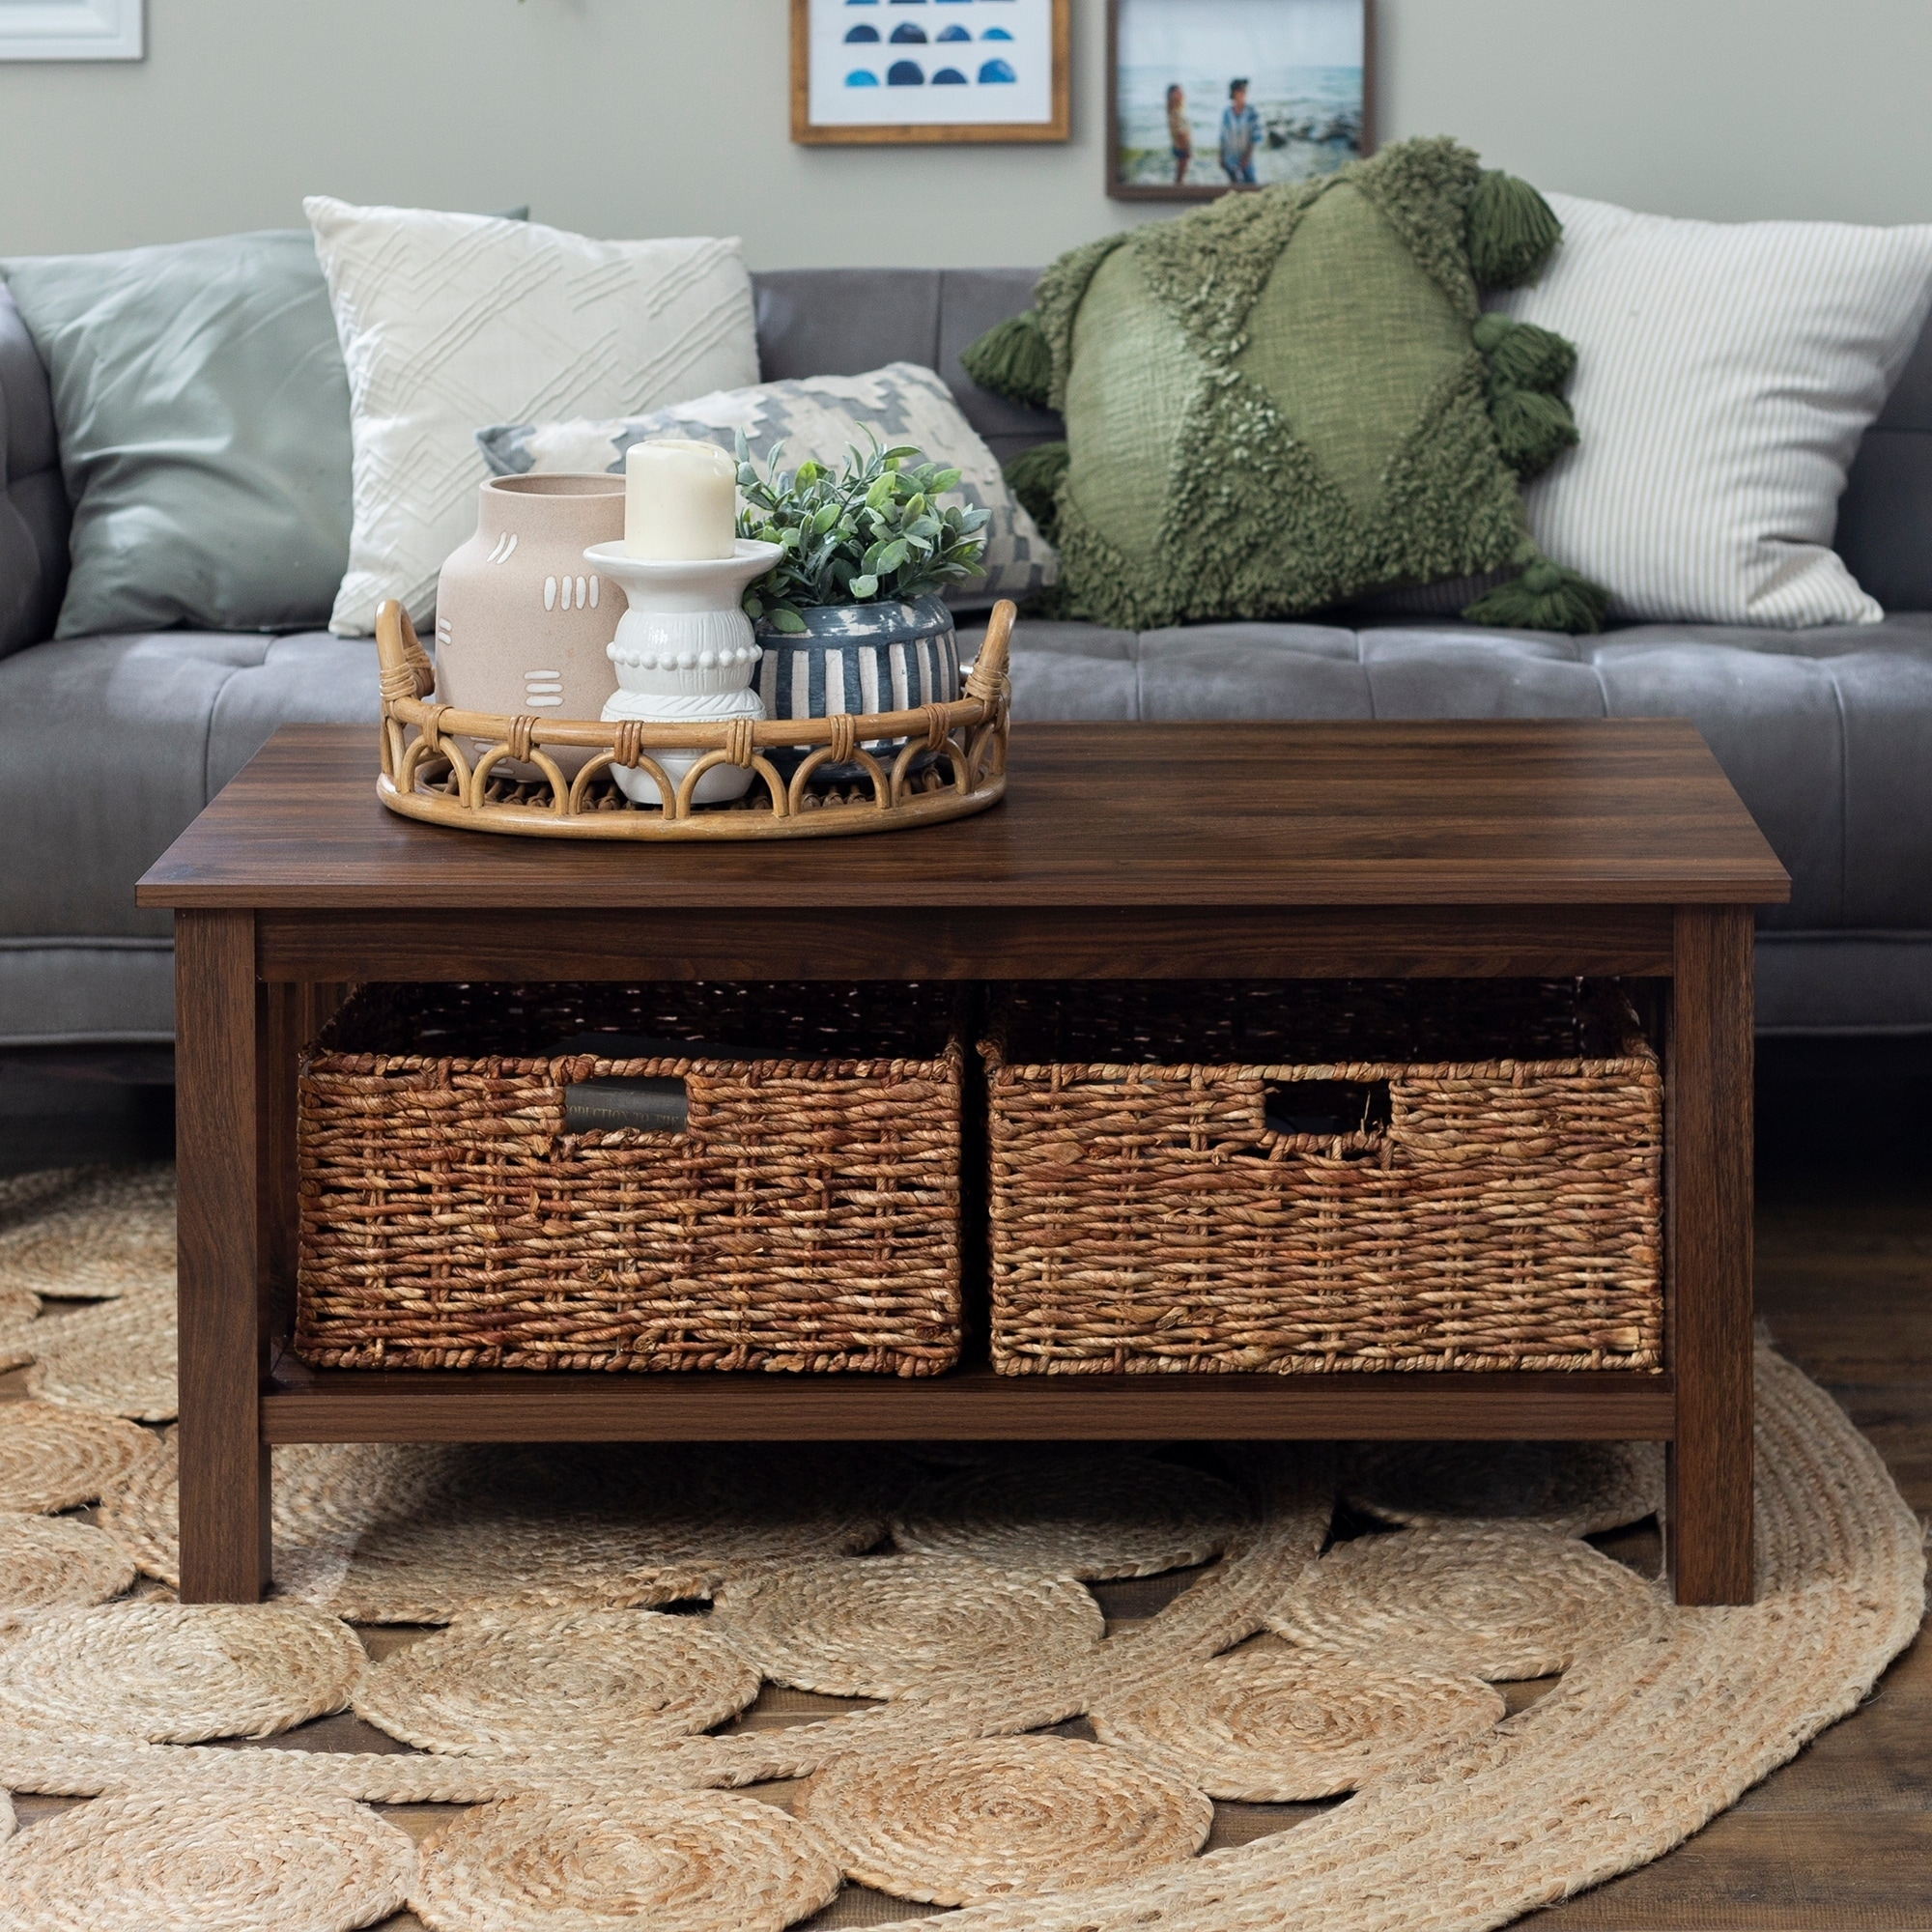 - Shop 40-inch Coffee Table With Wicker Storage Baskets - Overstock